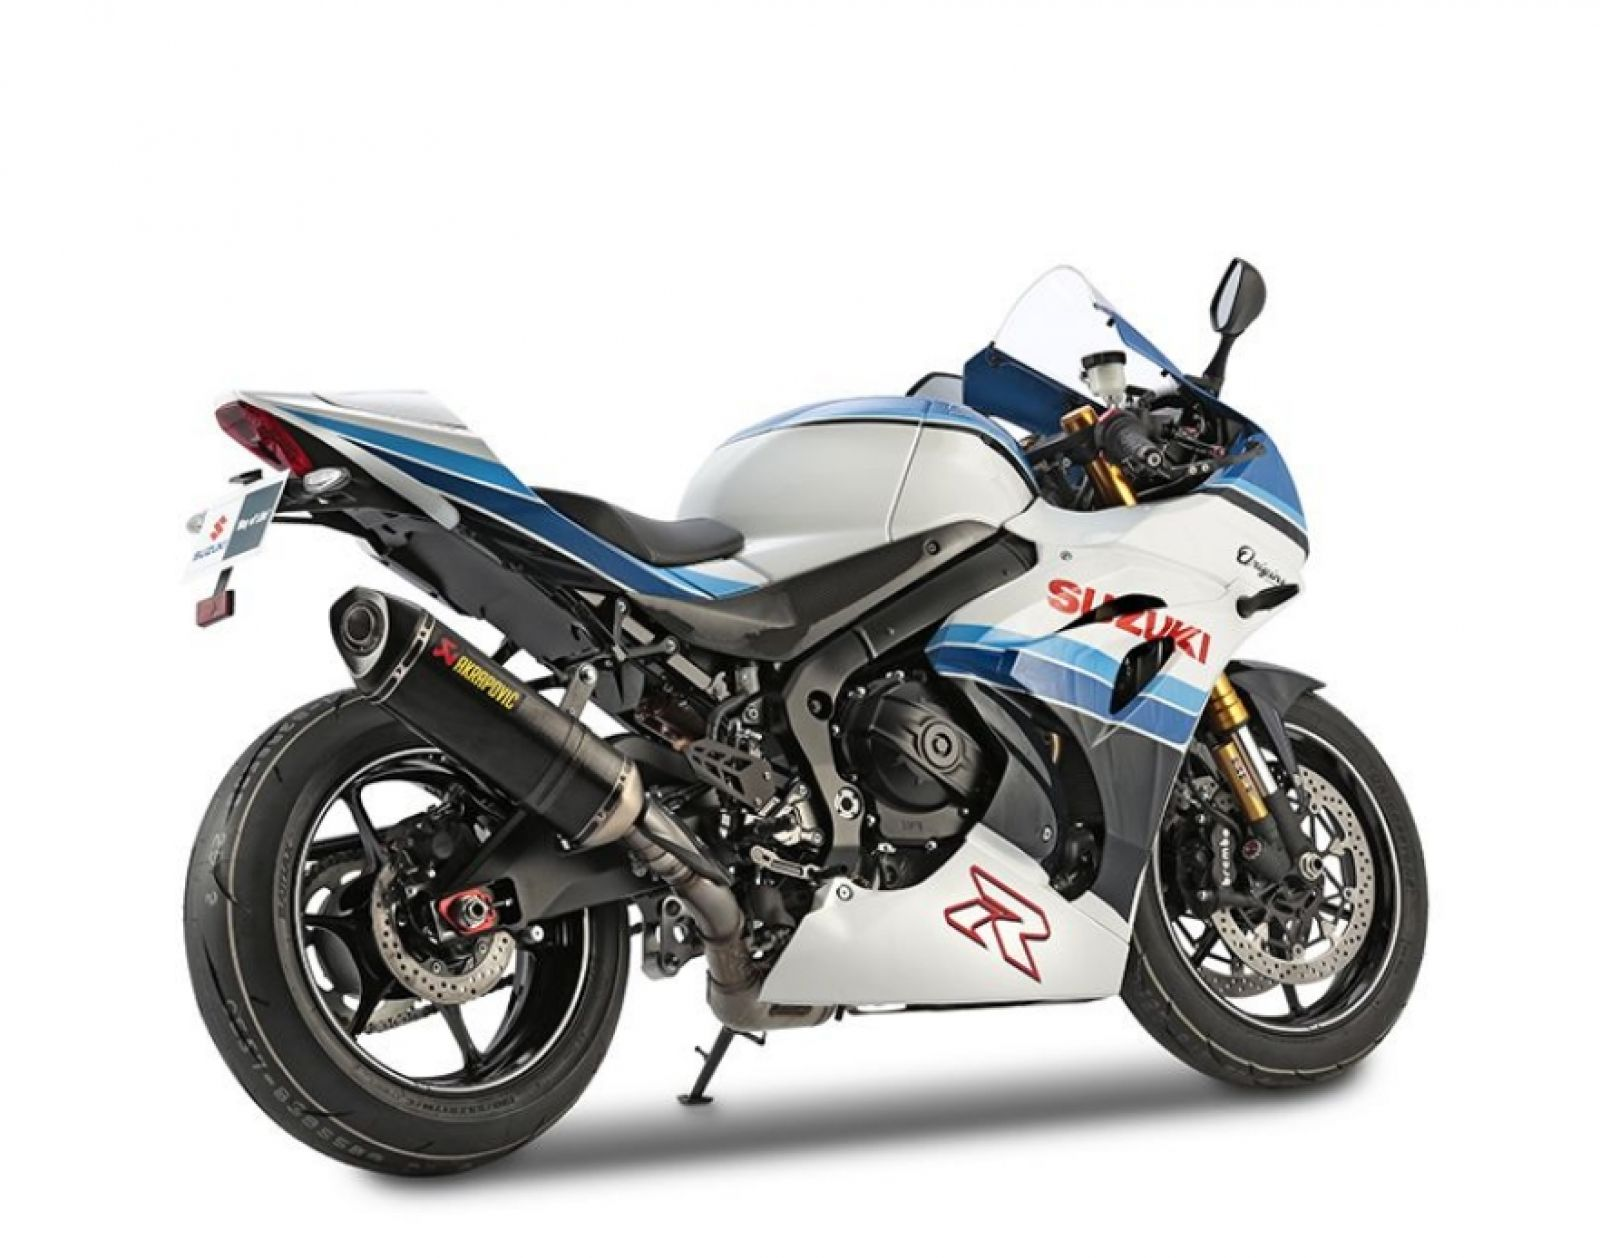 actualité - GSX-R1000R Origins - image d'illustration 13